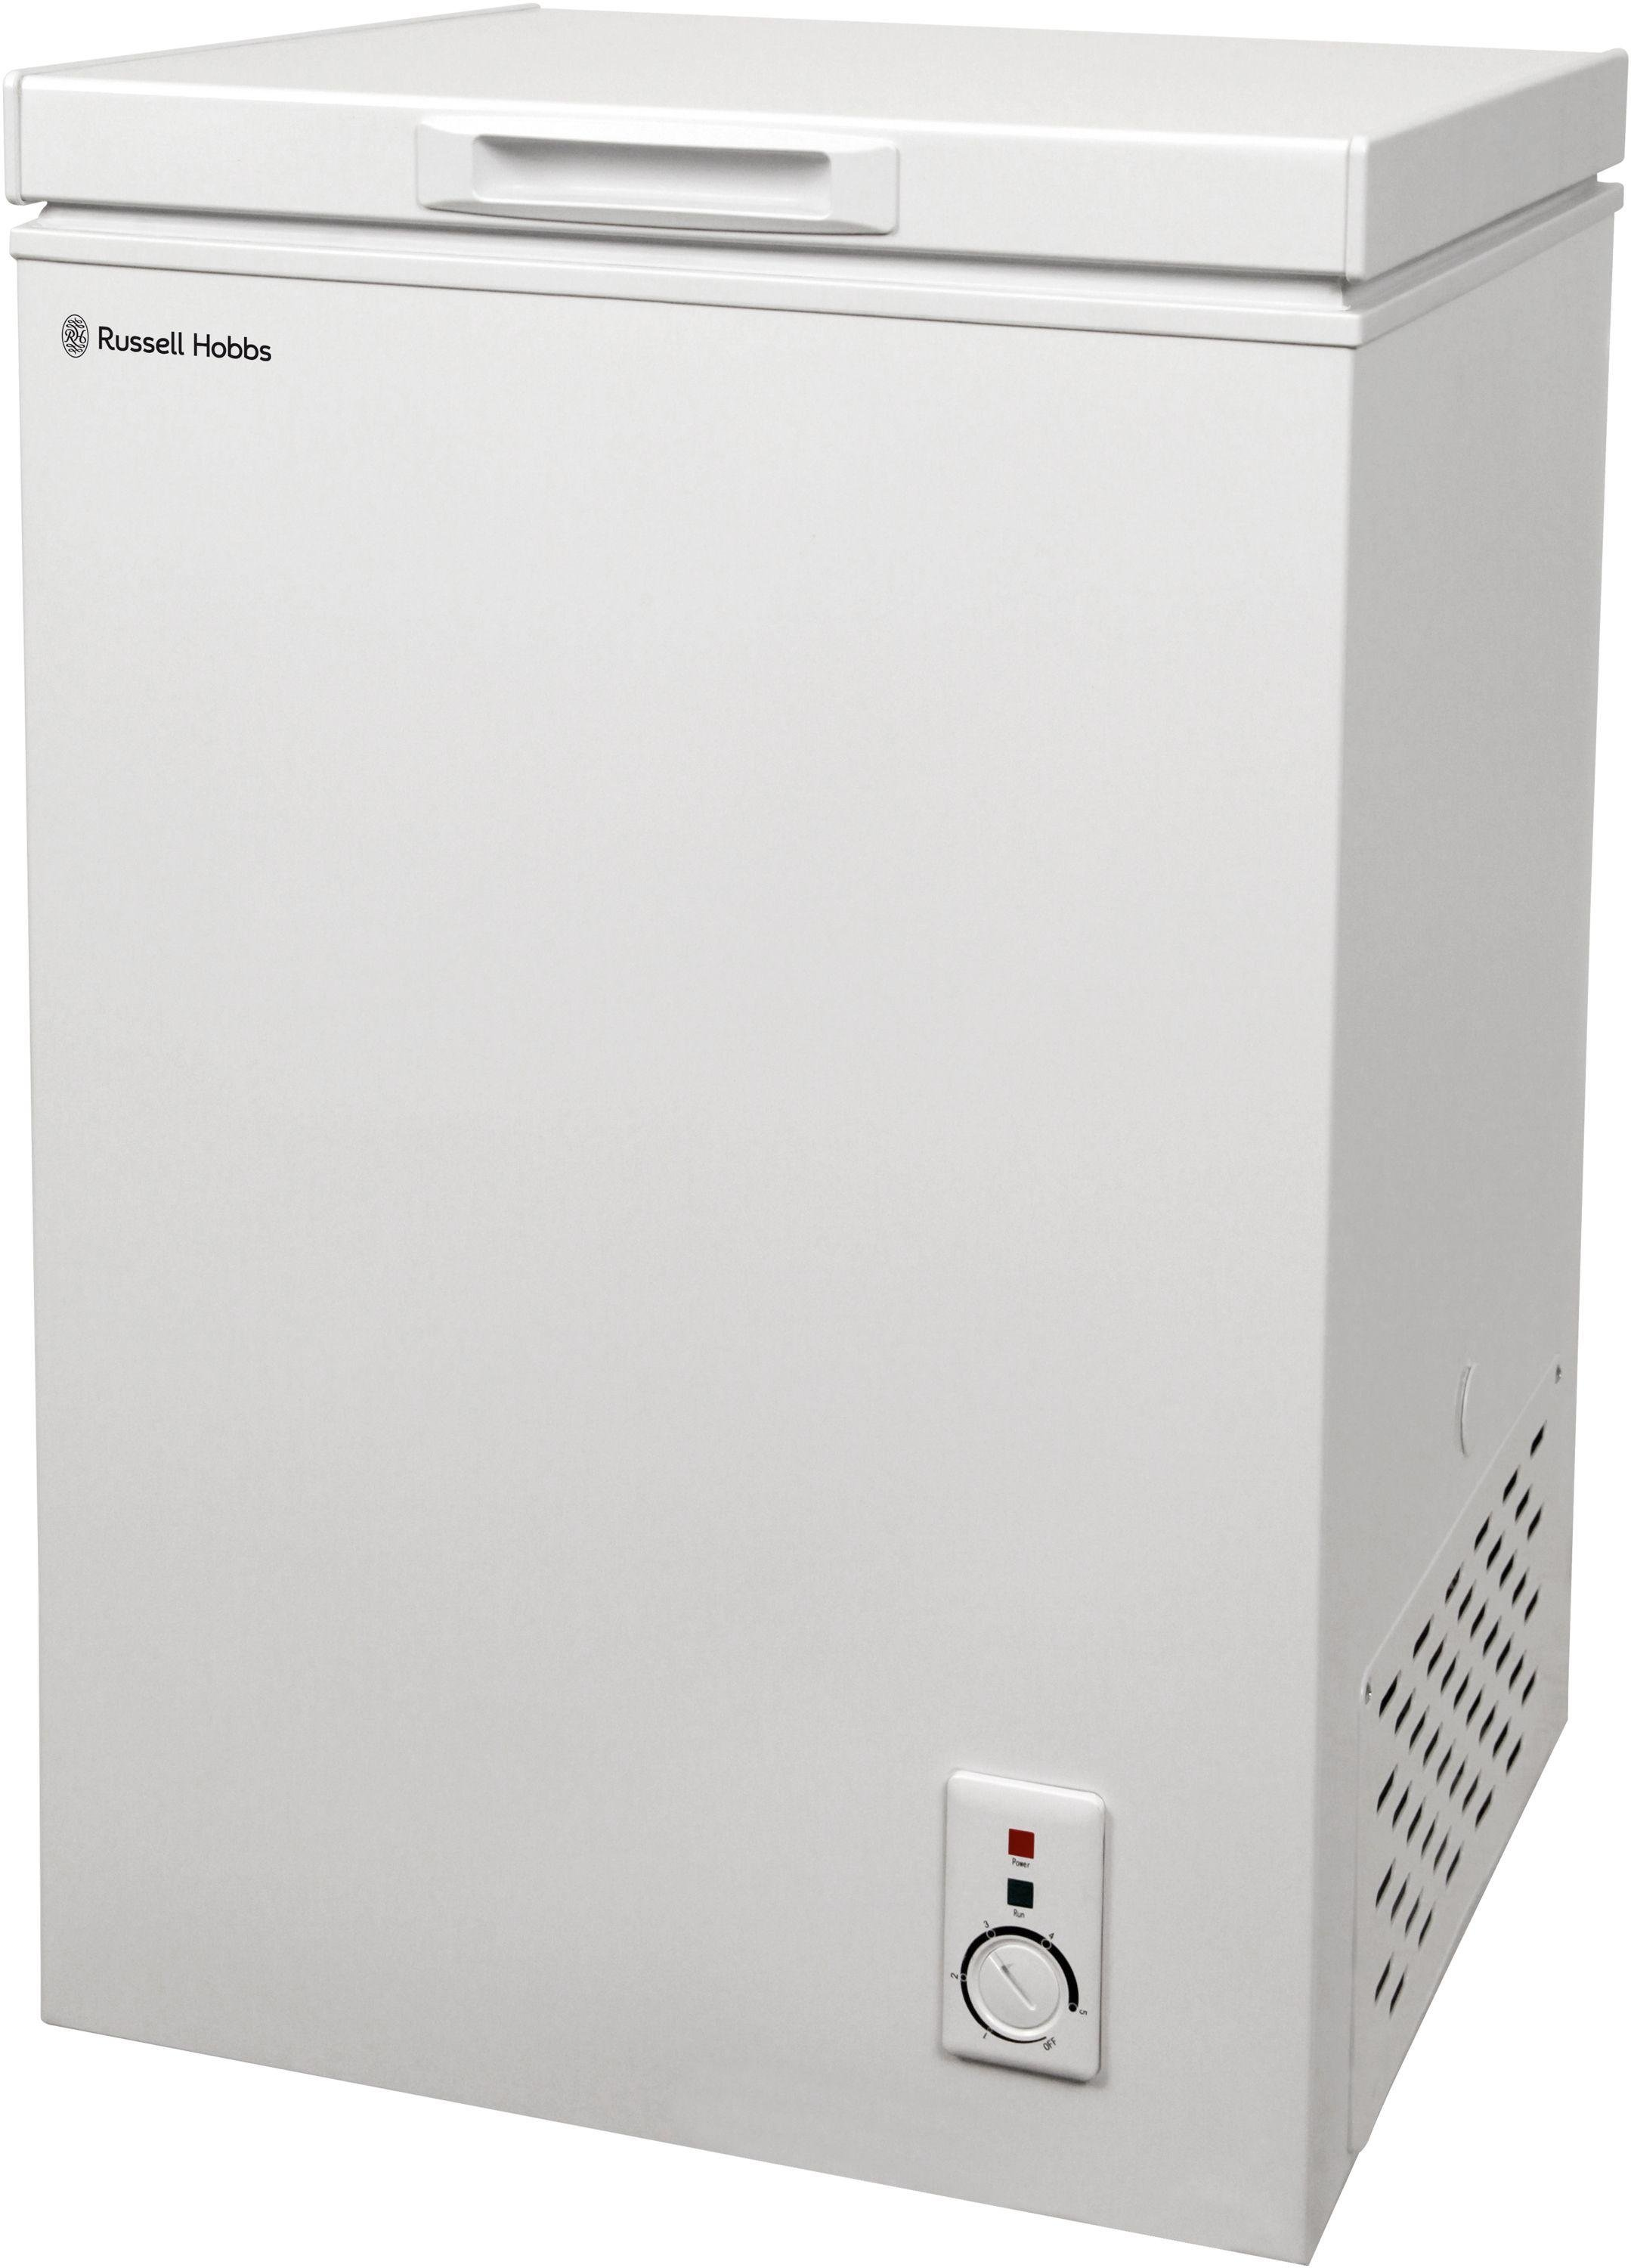 Russell Hobbs - RHCF103 - Chest - Freezer - White/Ins/Del/Rec